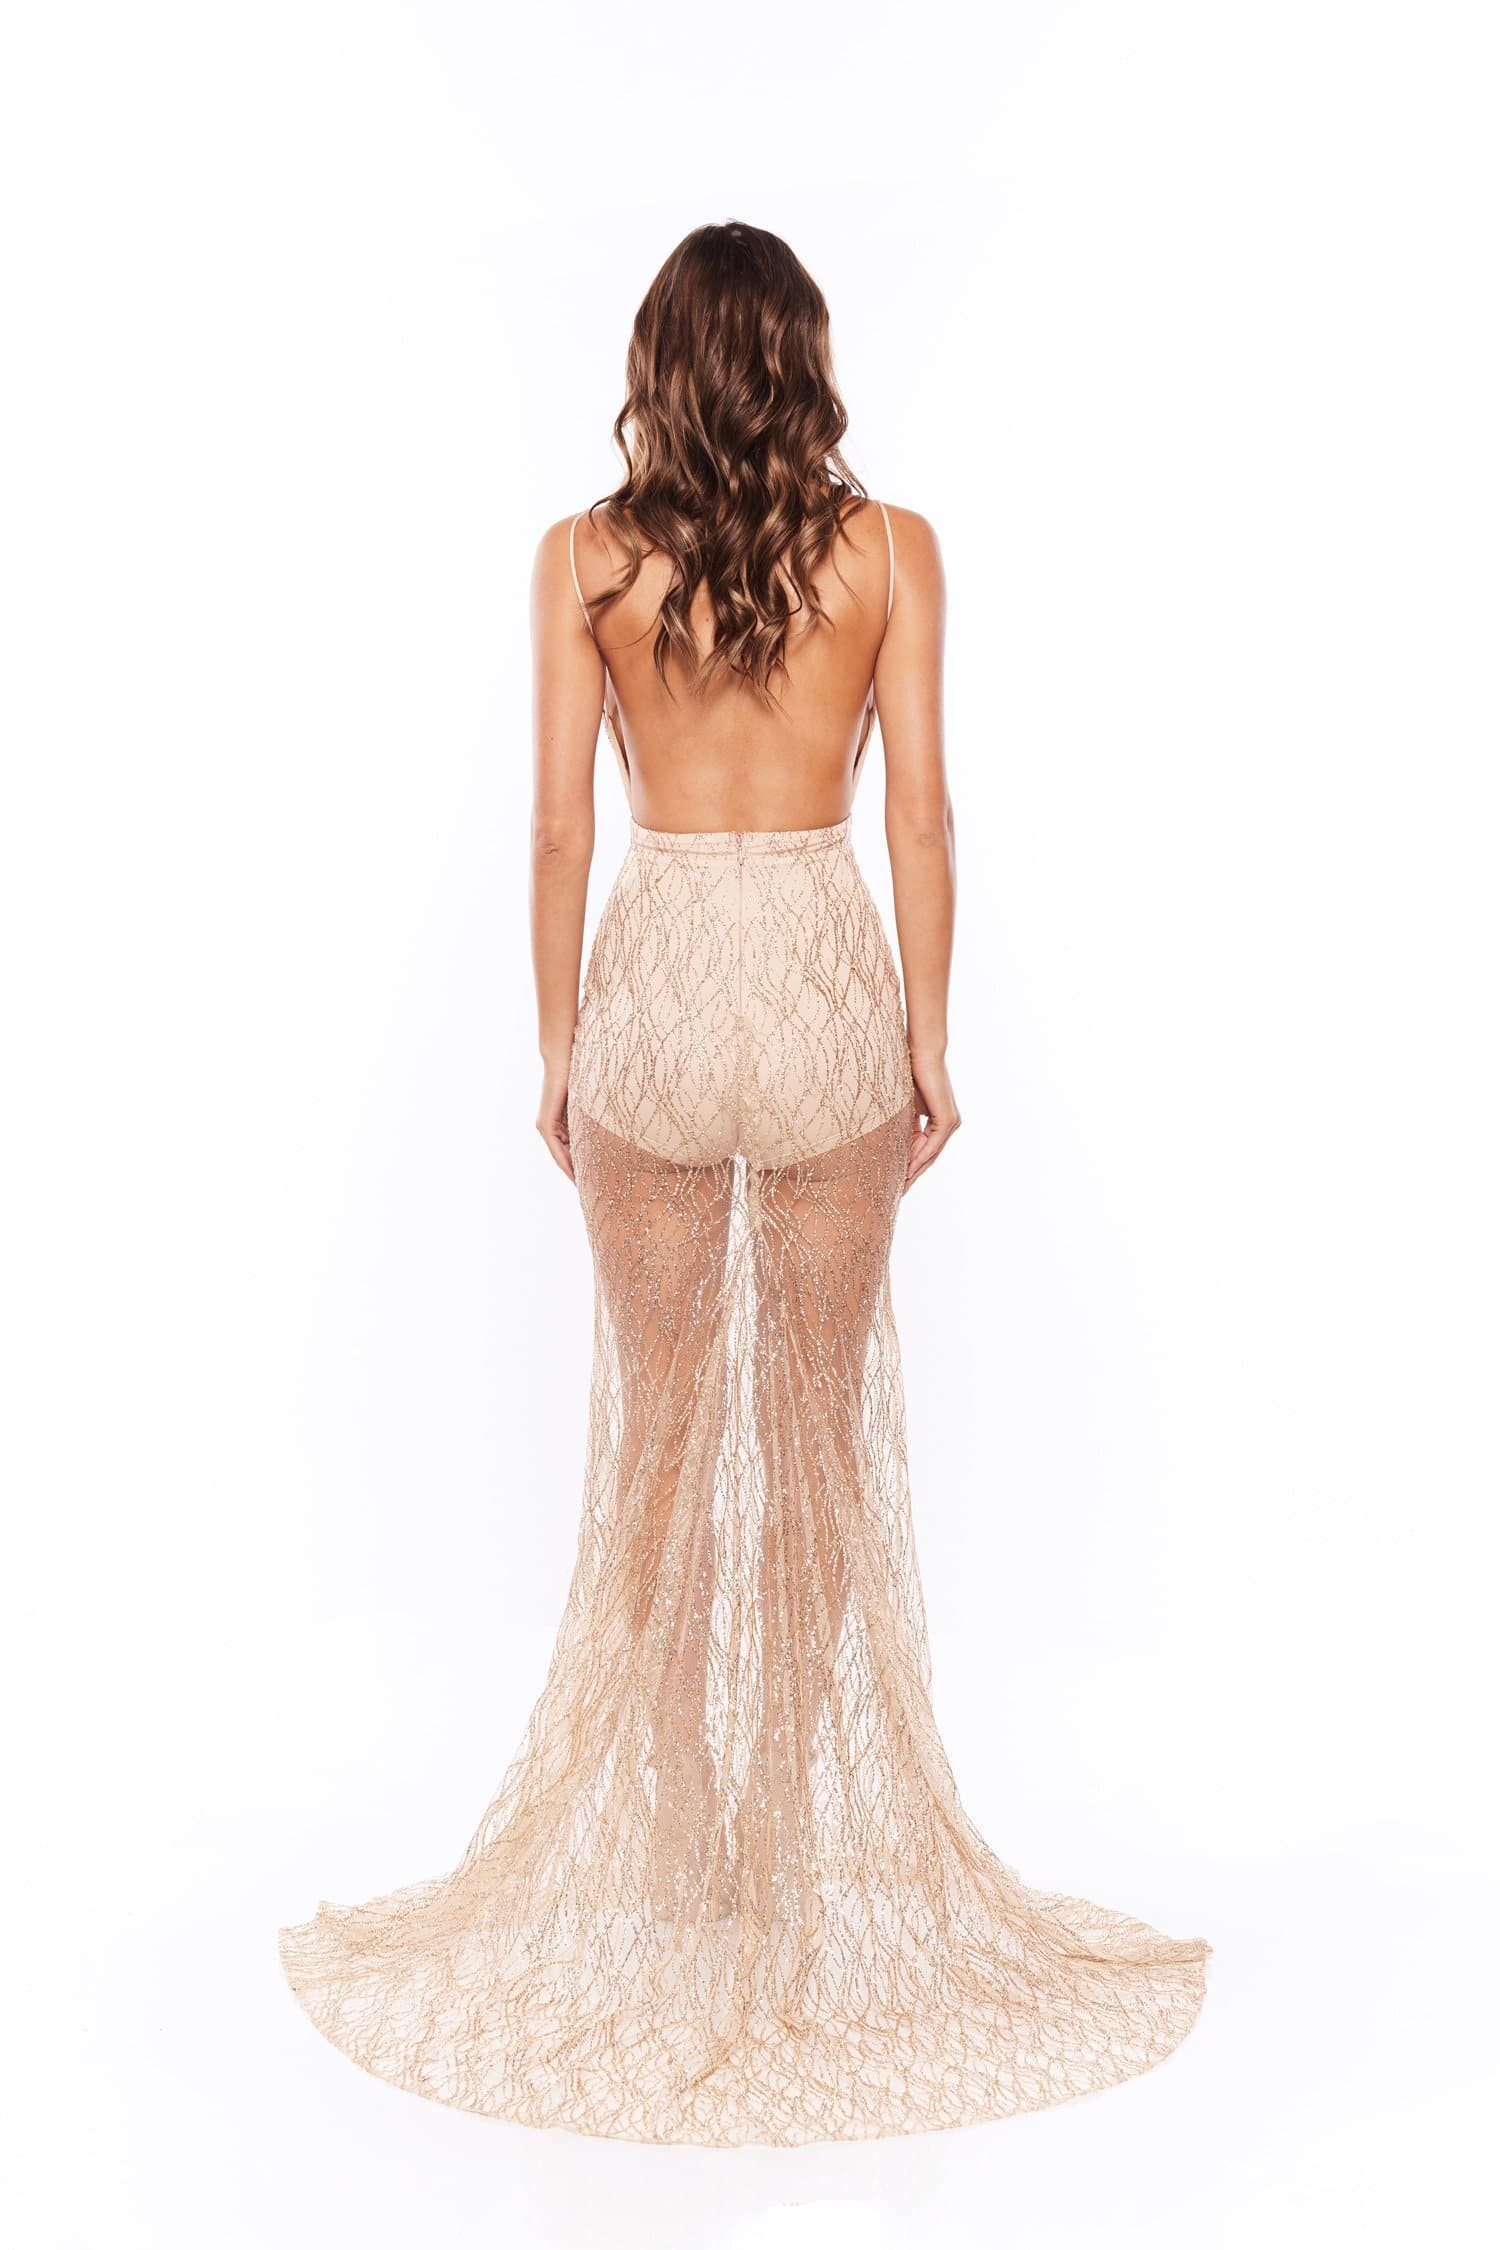 Joella - Gold Sheer Glitter Gown with Low Back & Plunge Neckline